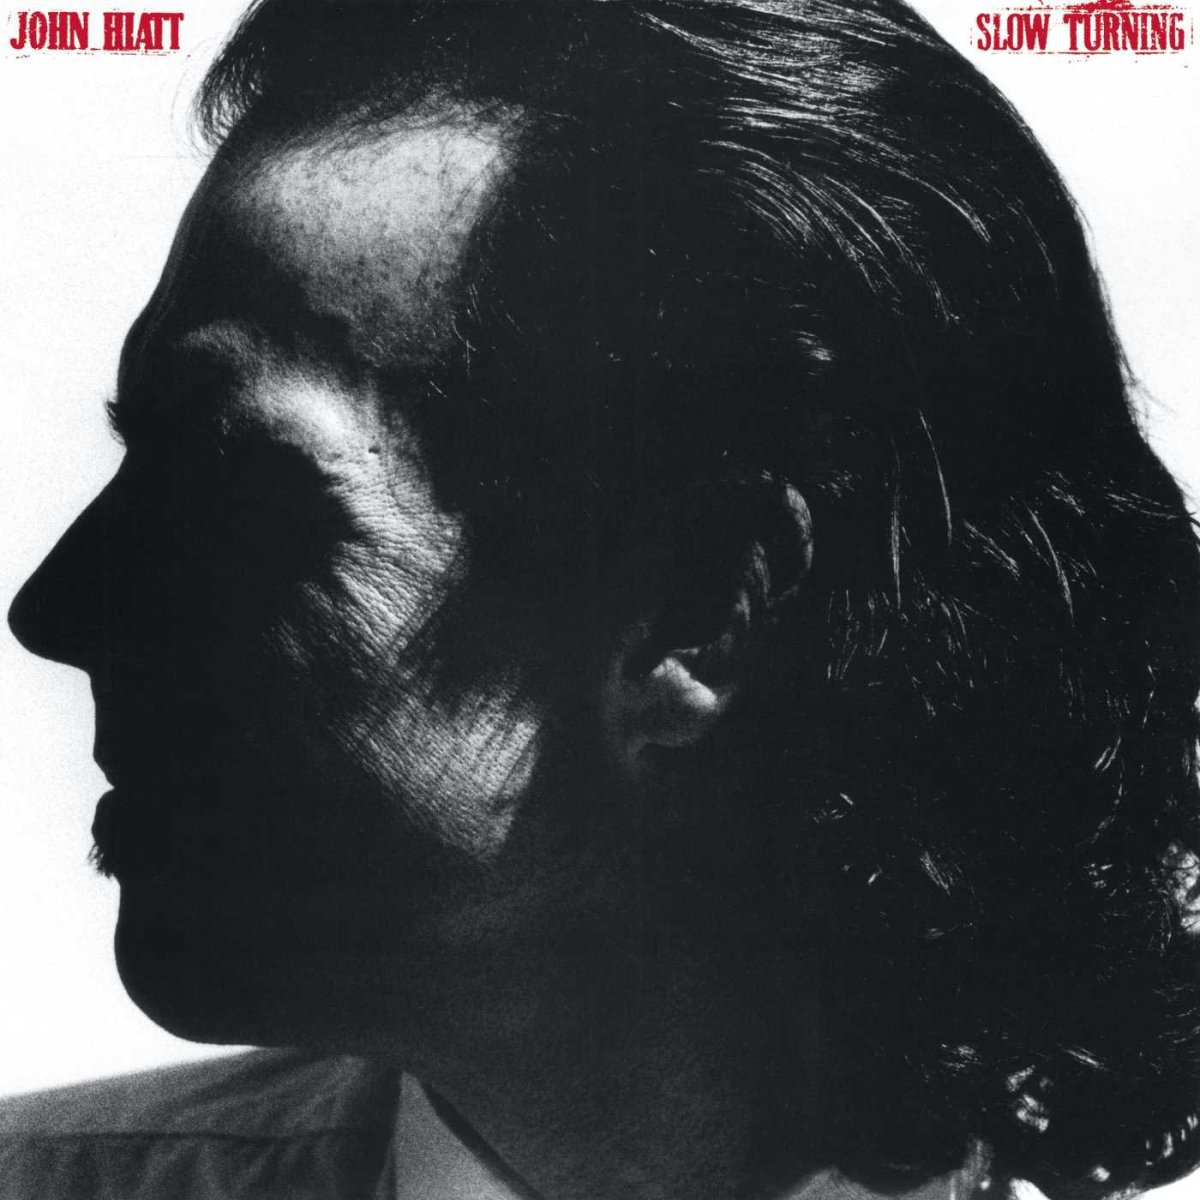 John Hiatt – Slow Turning